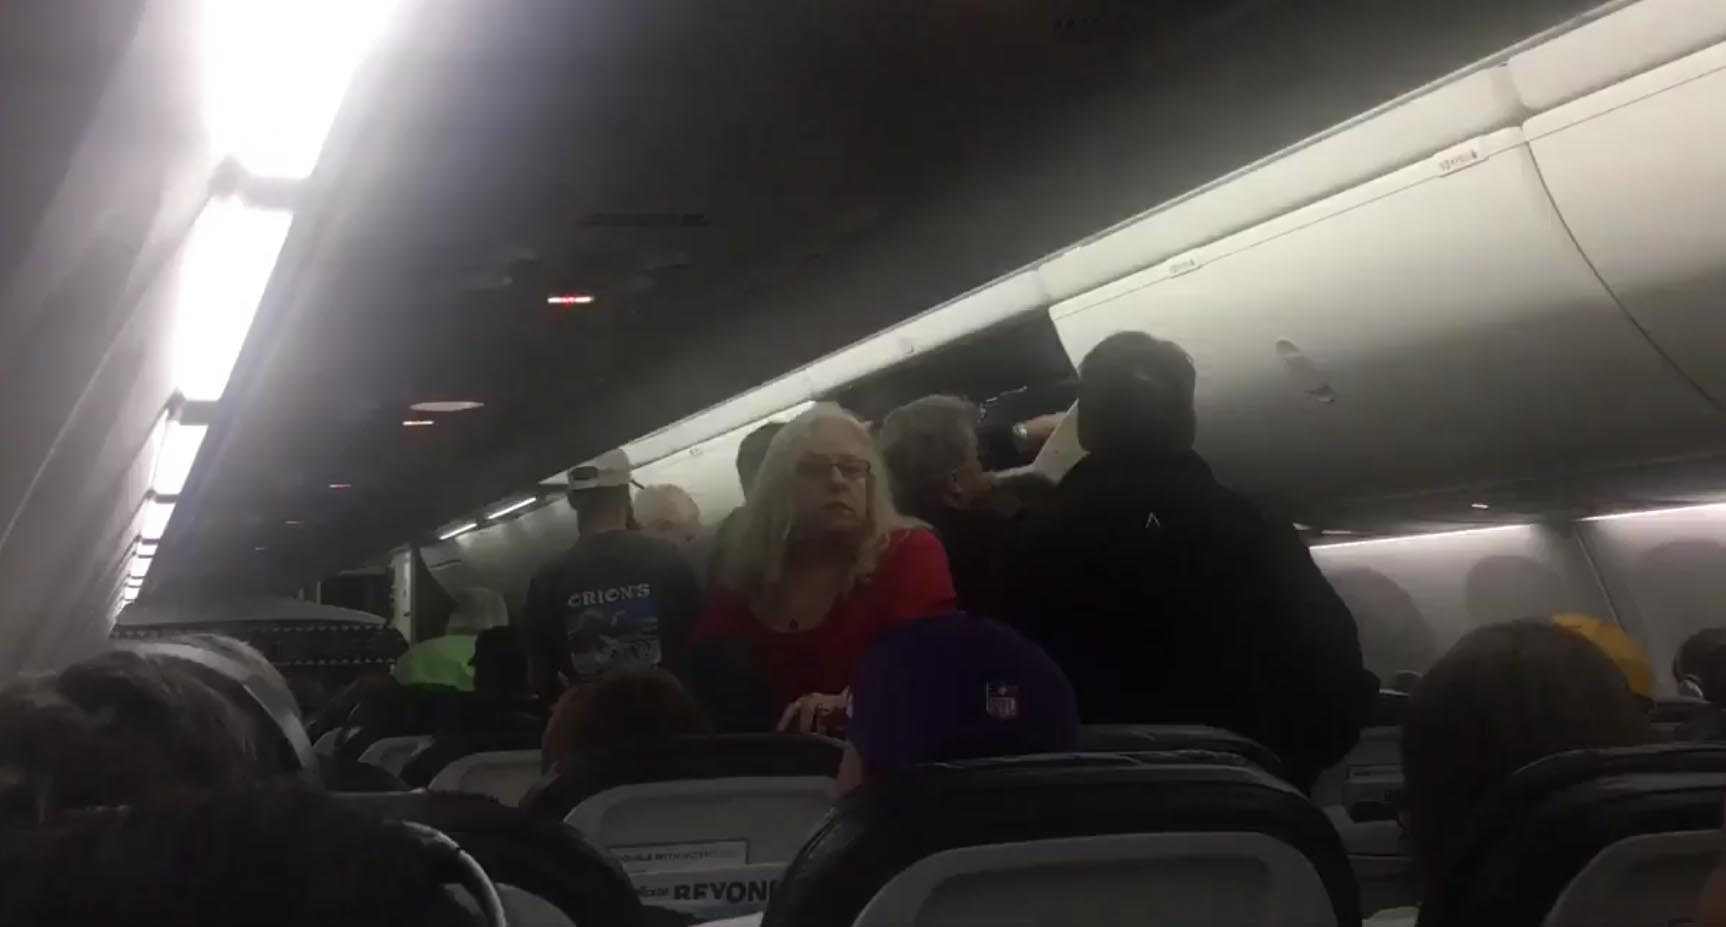 Alaska Airlines As146 Returned To Anchorage After A